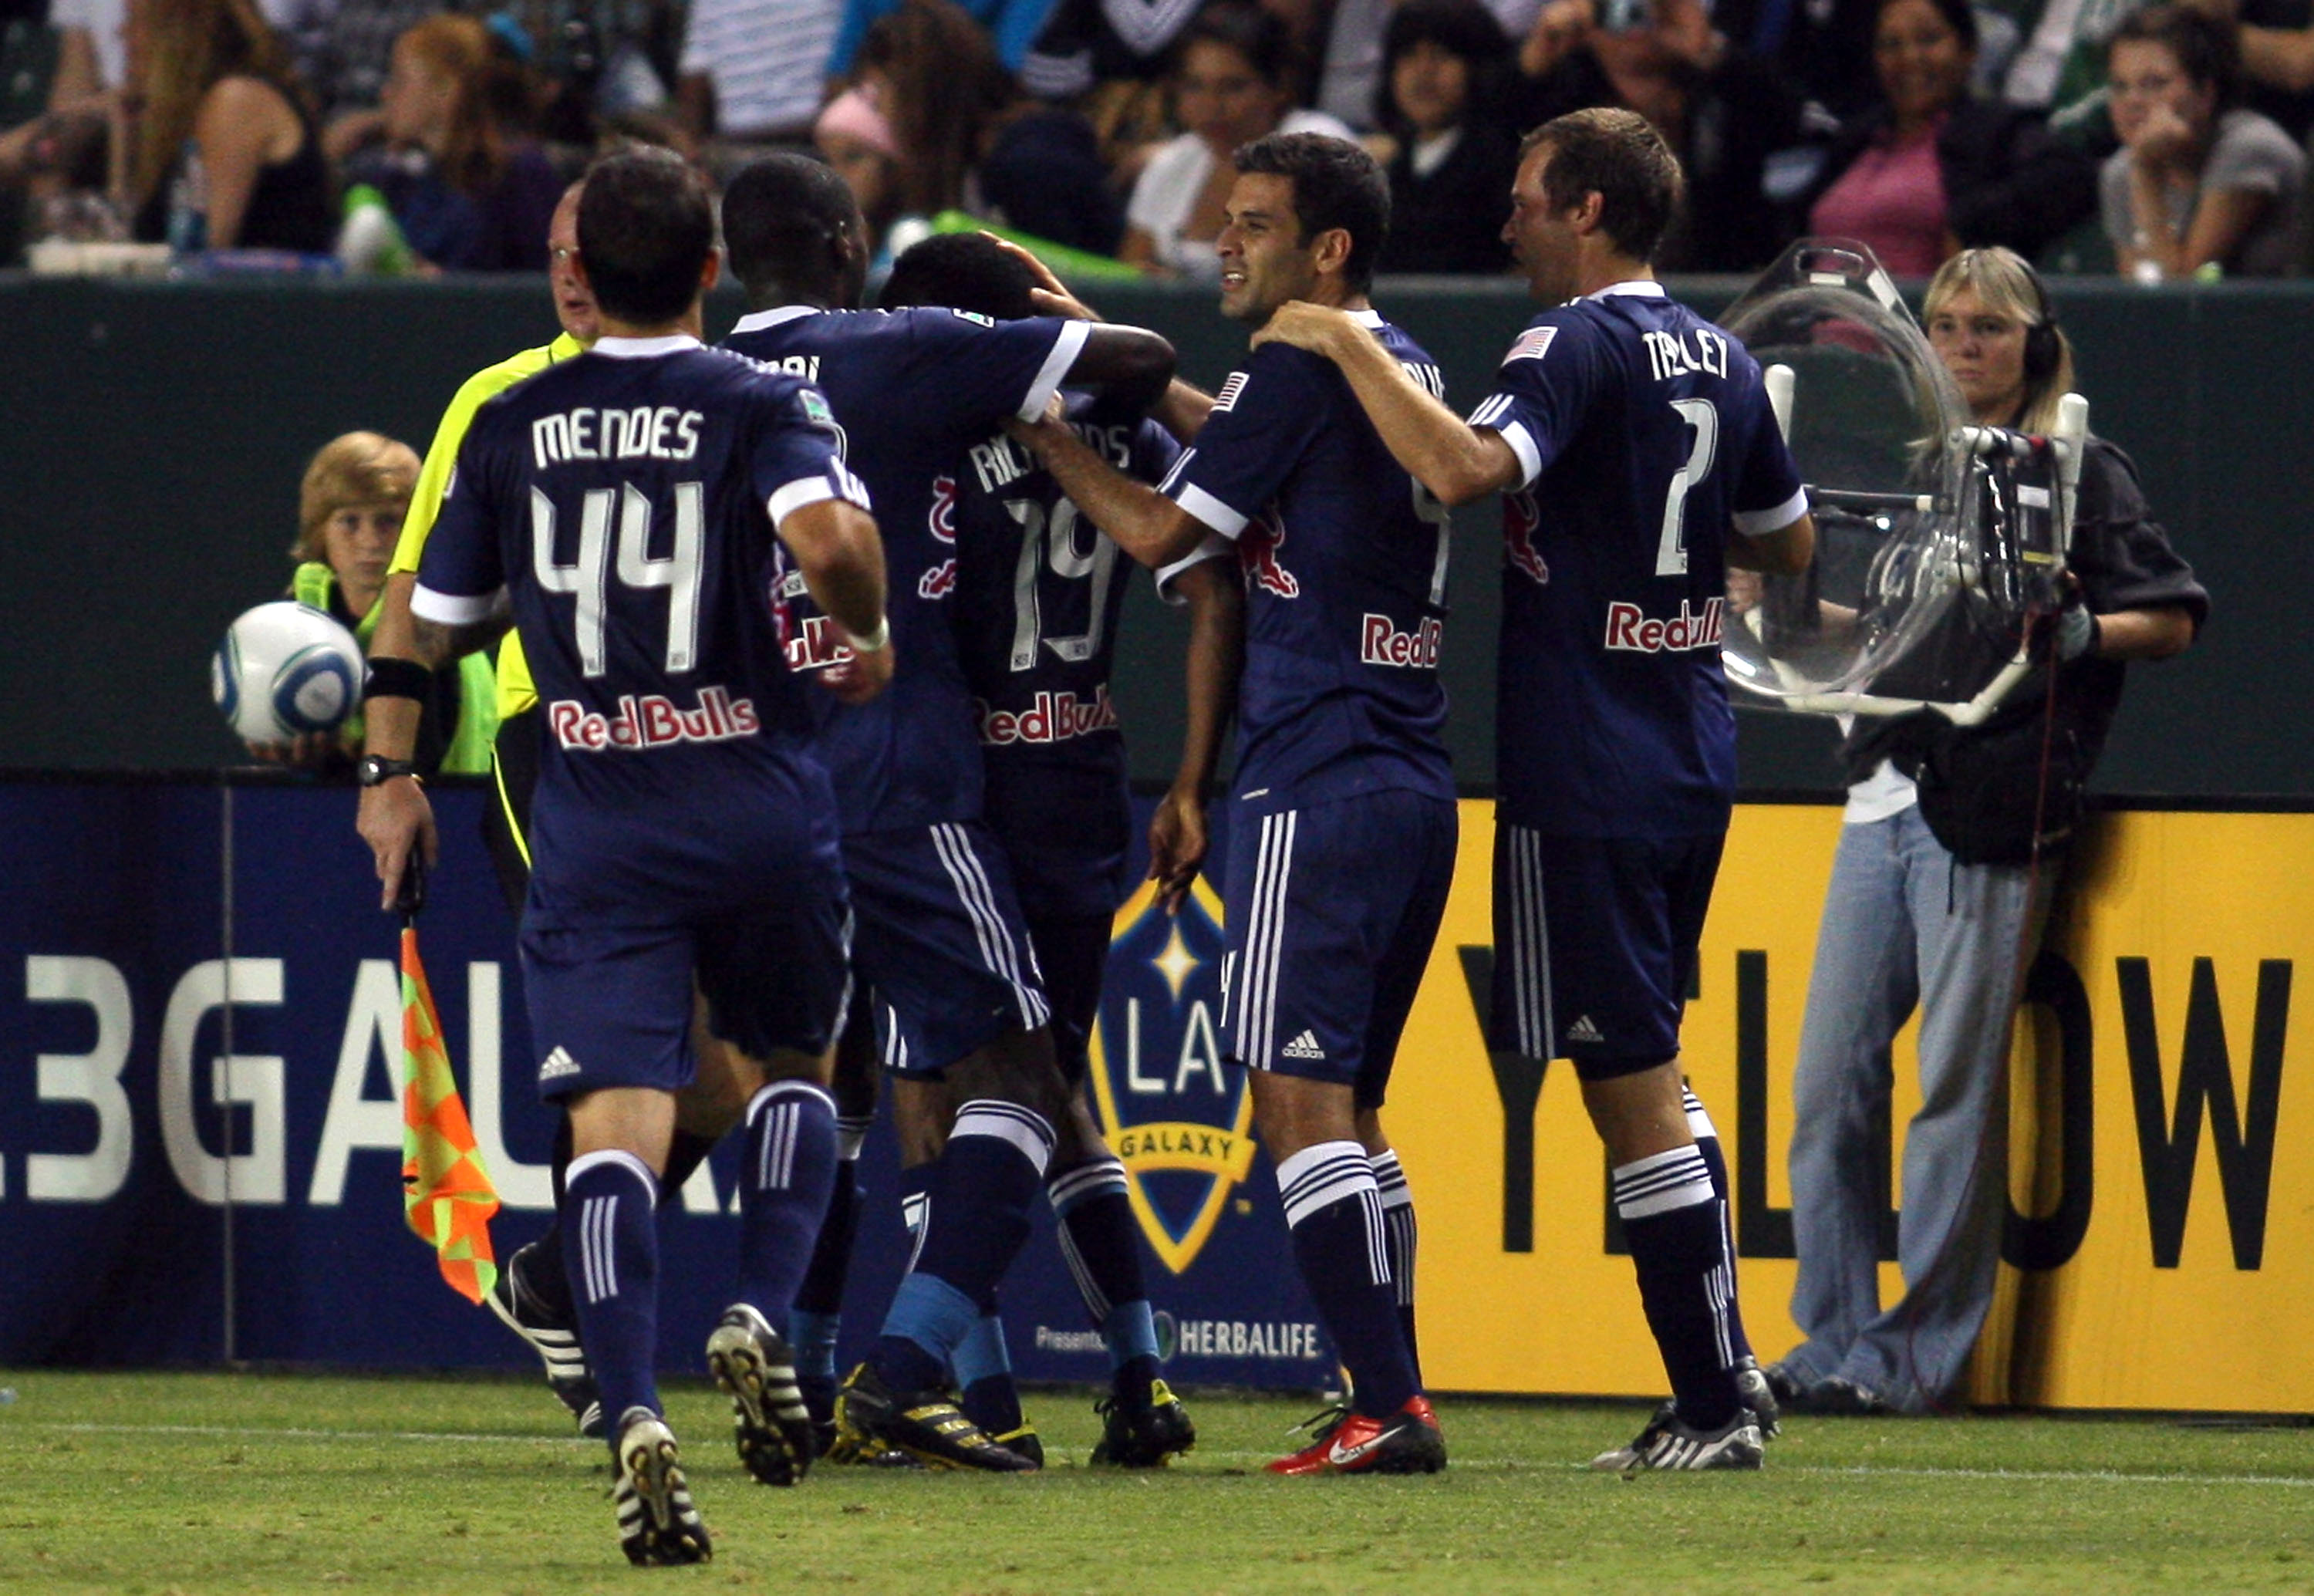 CARSON, CA - SEPTEMBER 24:  Carlos Mendes #44, Tony Tchani #23, Rafael Marquez #4 and Carey Talley #2 of New York Red Bulls celebrate with teammate Dane Richards #19 after Richards' first half goal against the Los Angeles Galaxy during the MLS match at Th